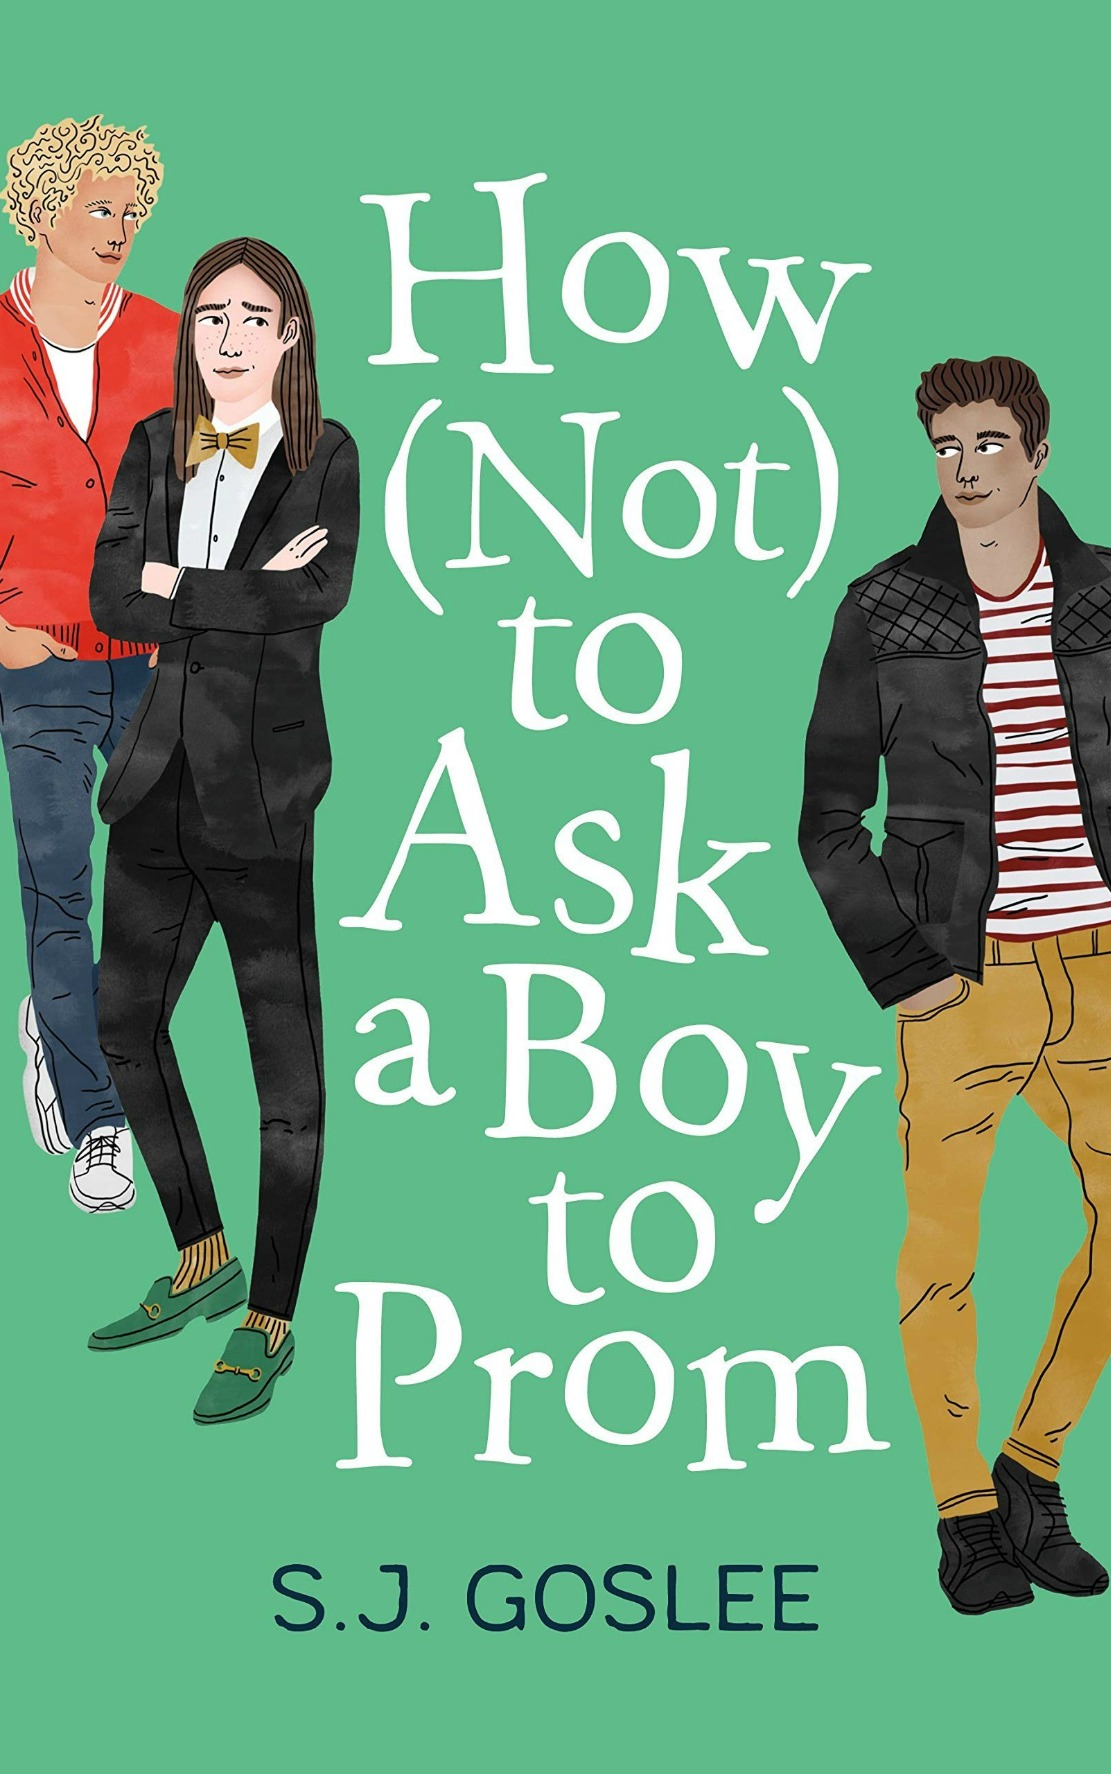 How Not to Ask a Boy to Prom by S.J. Goslee